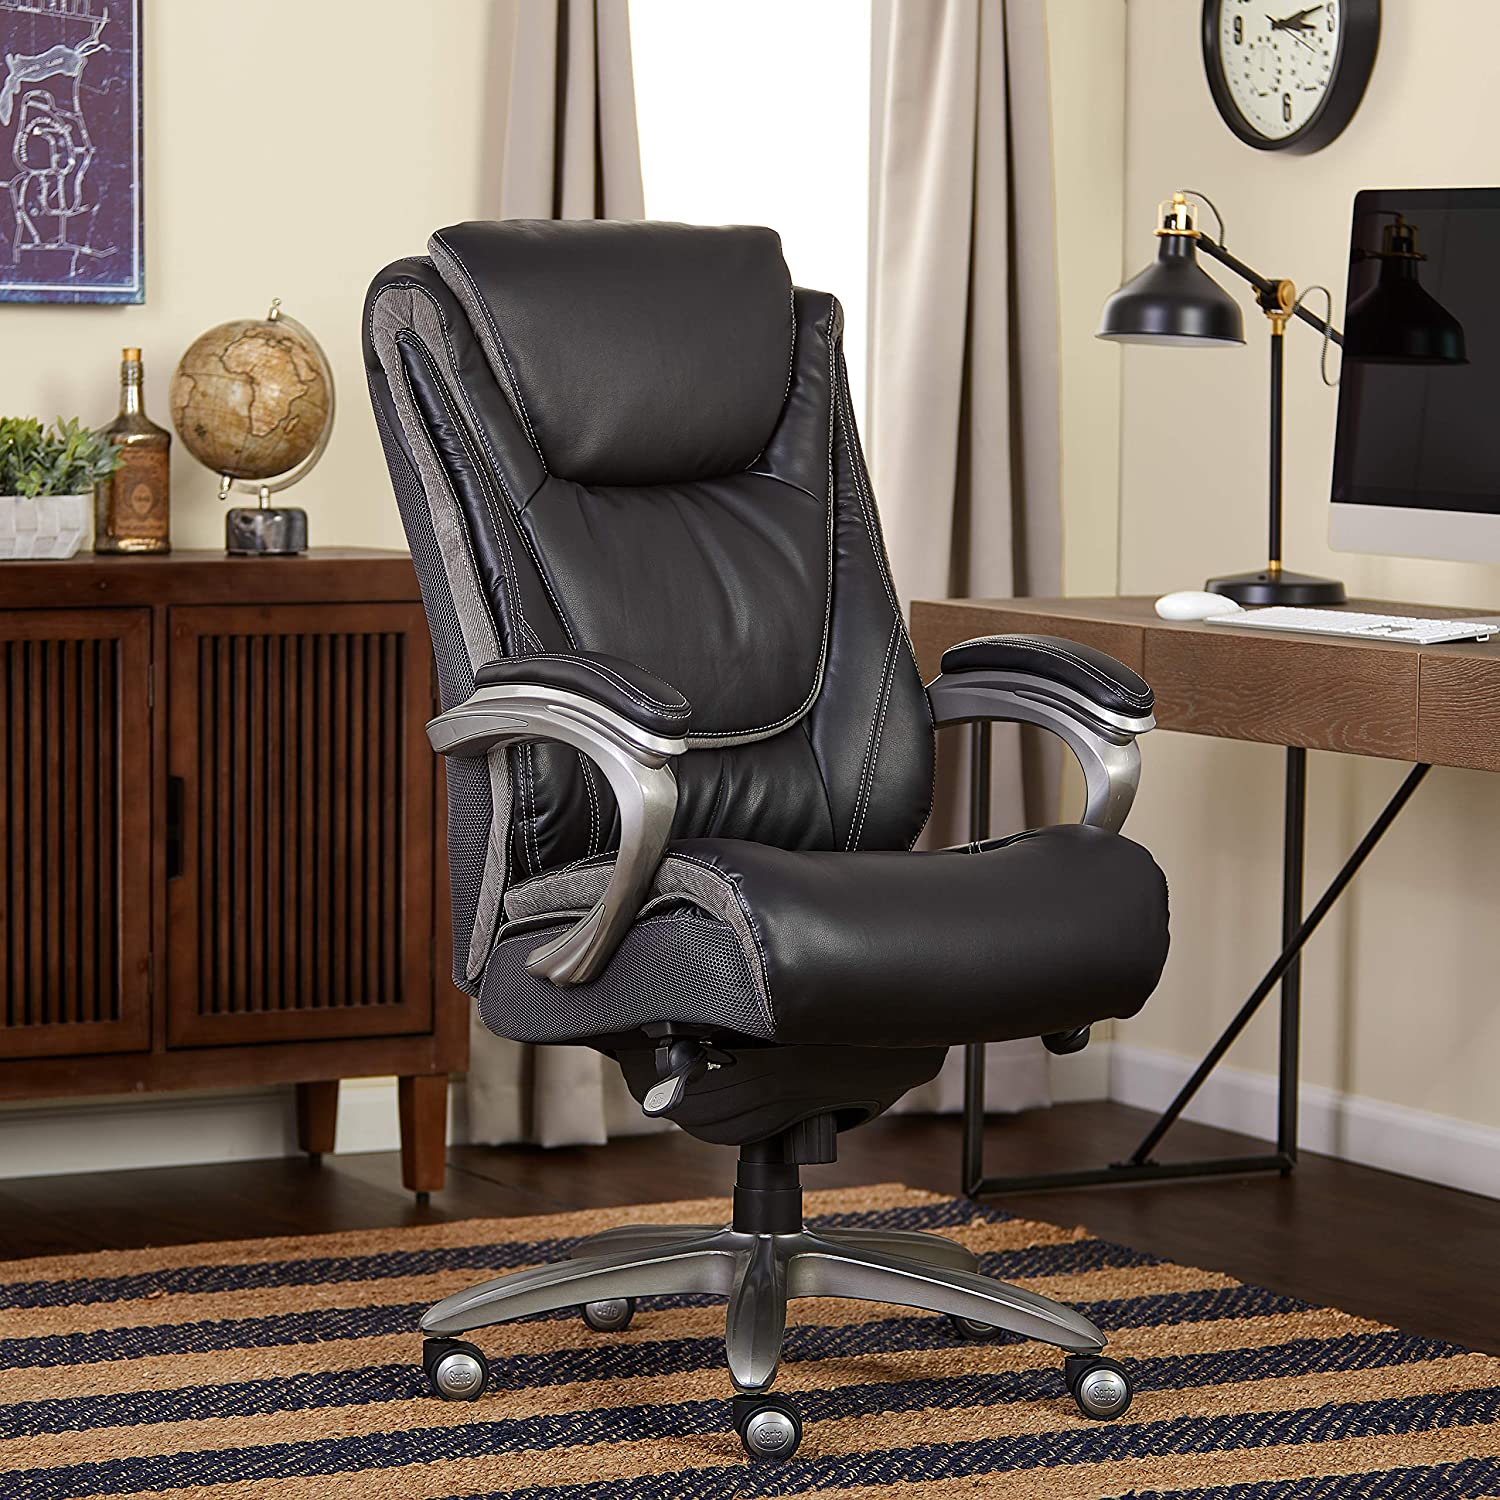 Serta Big and Tall Smart Layers Blissfully Executive Office Chair, Black